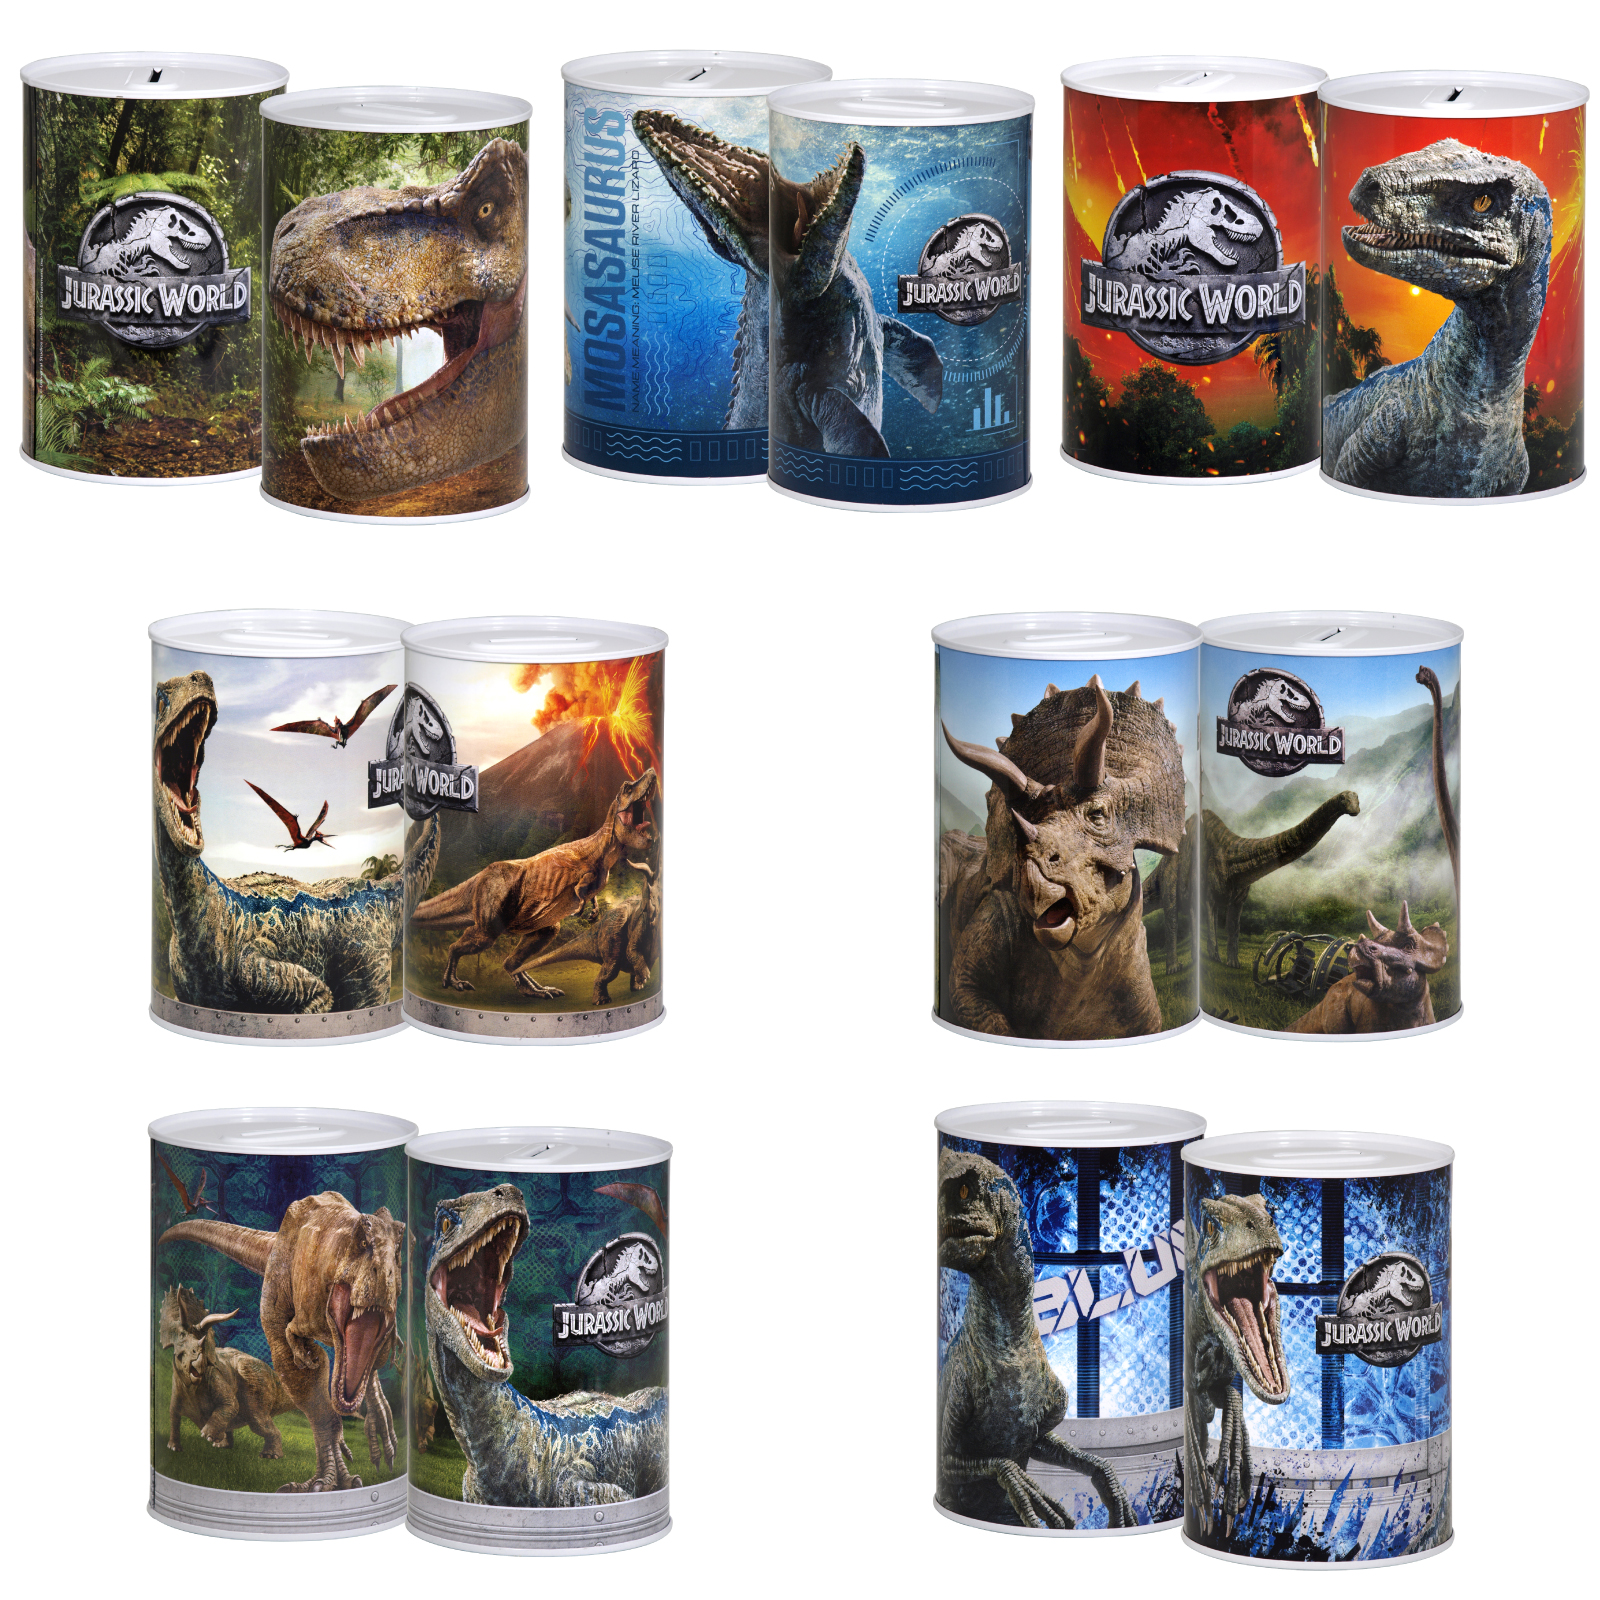 MONEY TIN 100X150MM JURASSIC WORLD